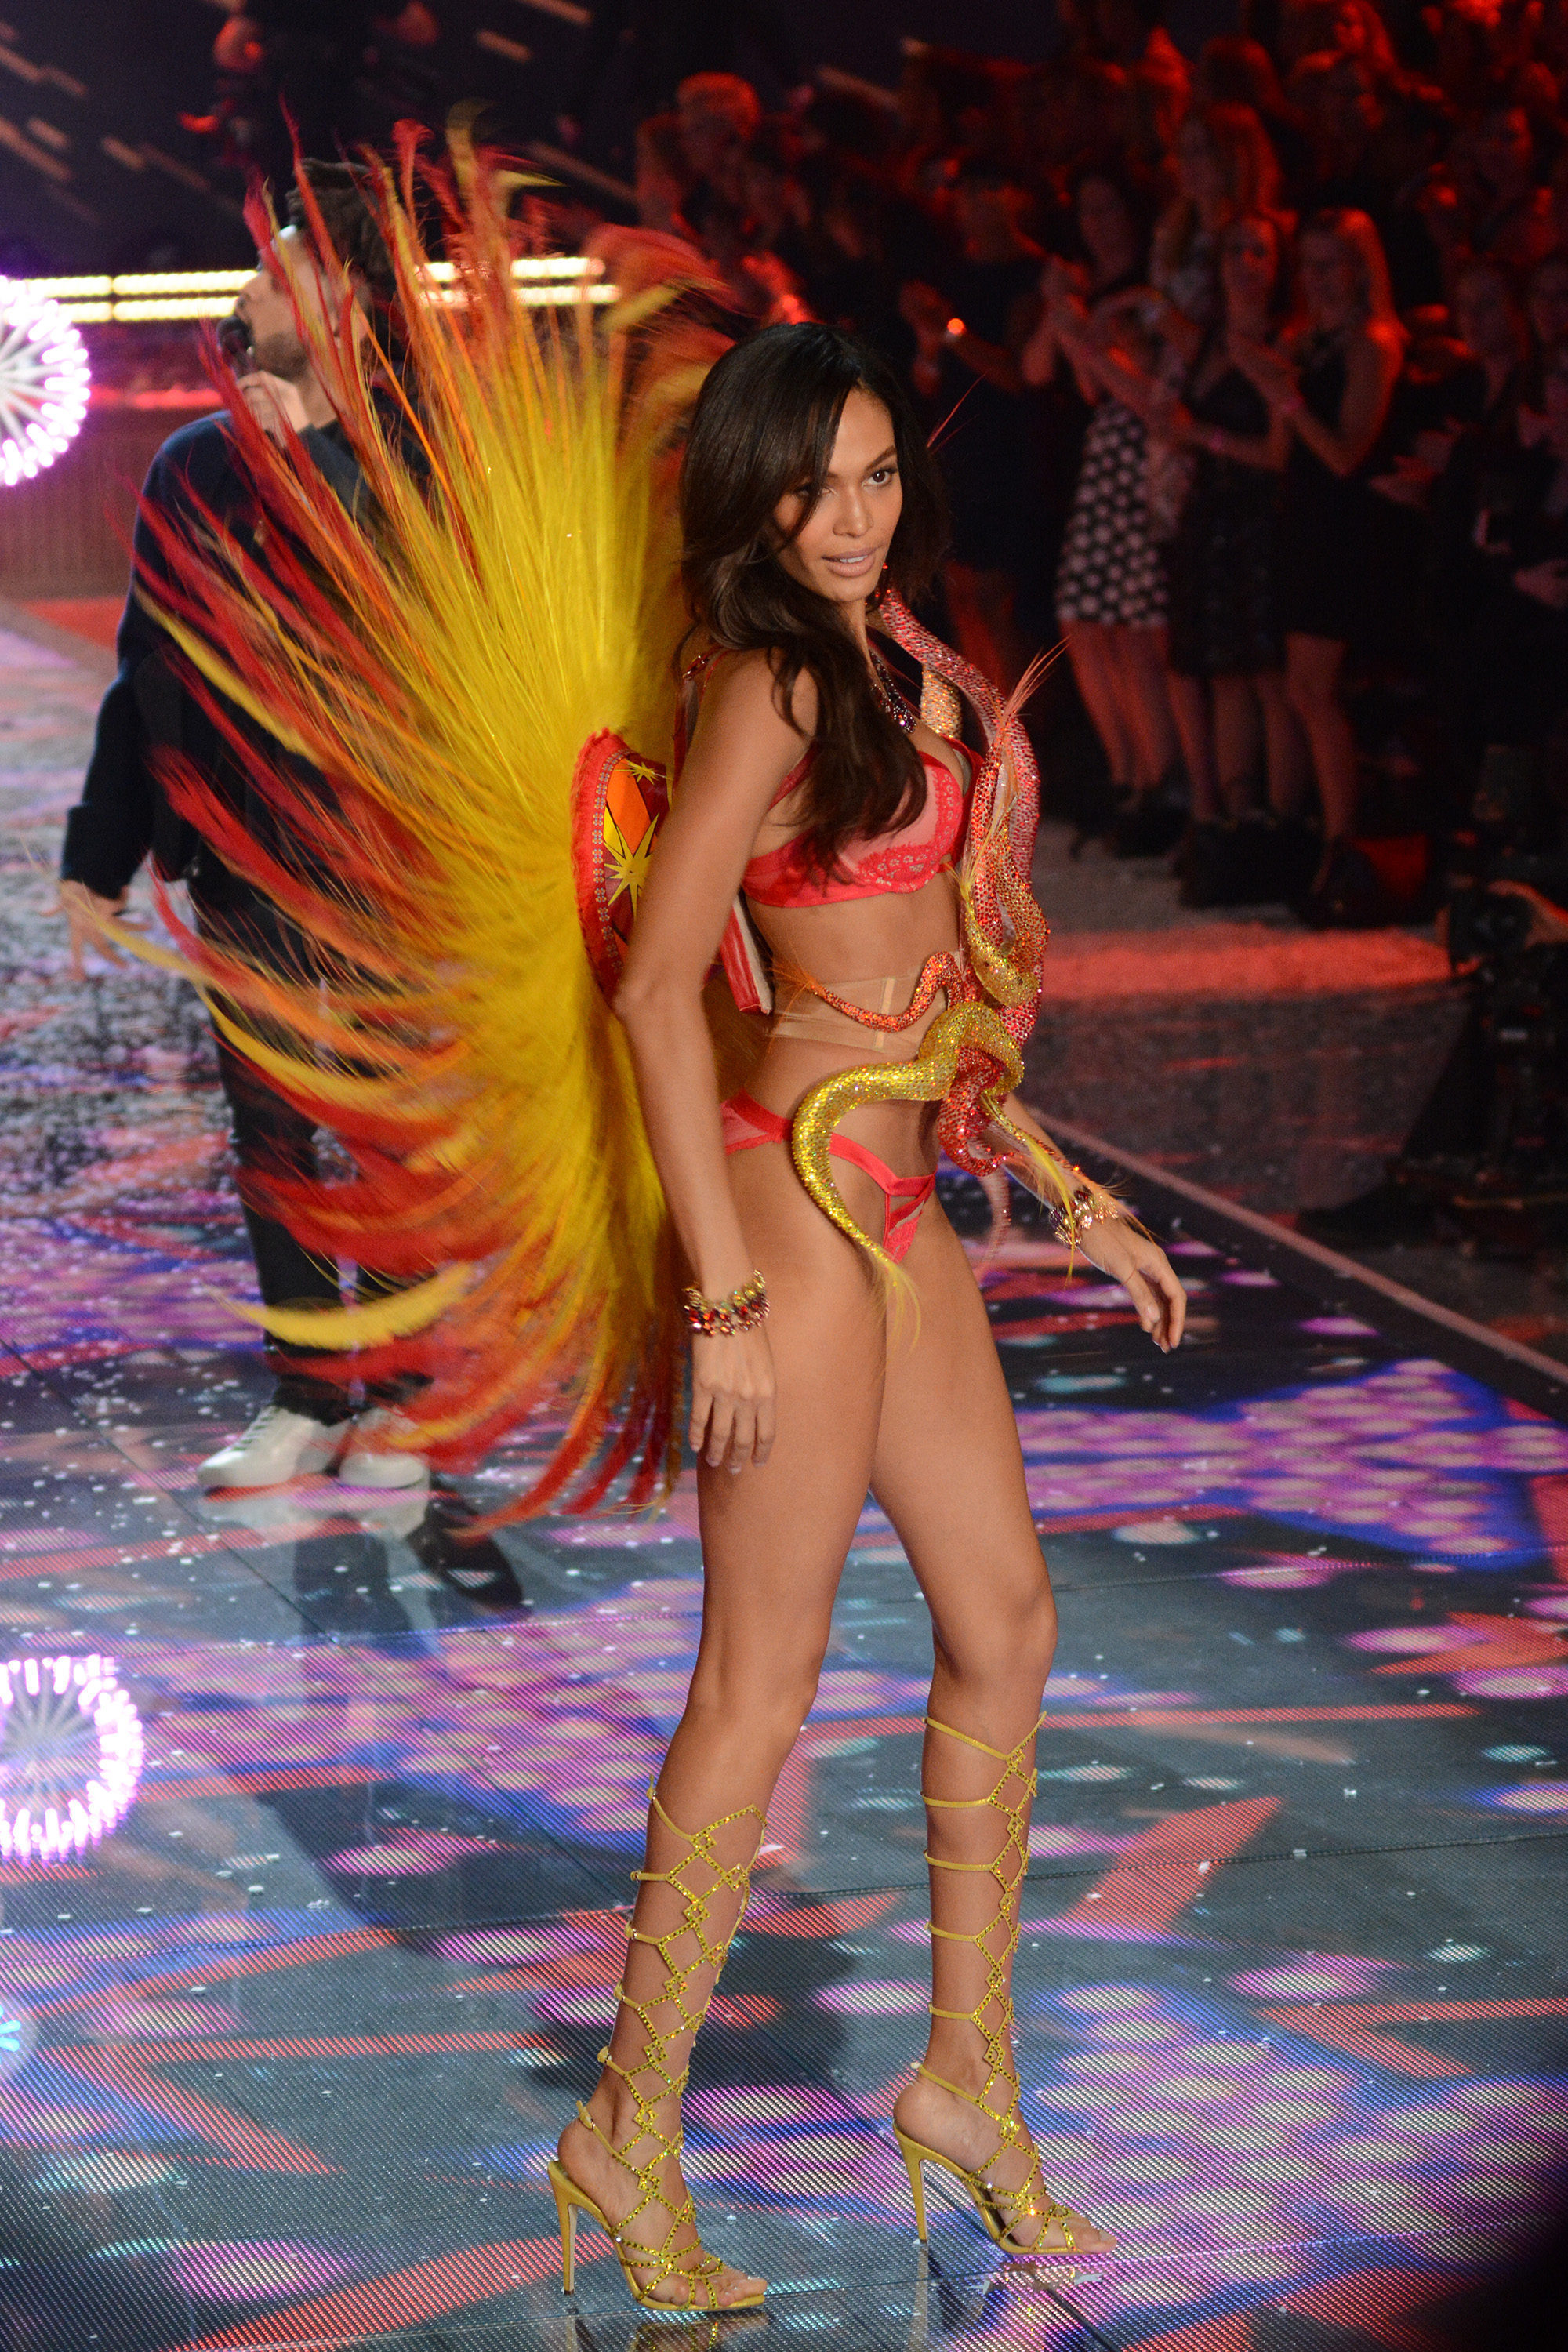 Joan Smalls at the 2015 Victoria's Secret Fashion Show - Runway (Ivan Nikolov/WENN.com)